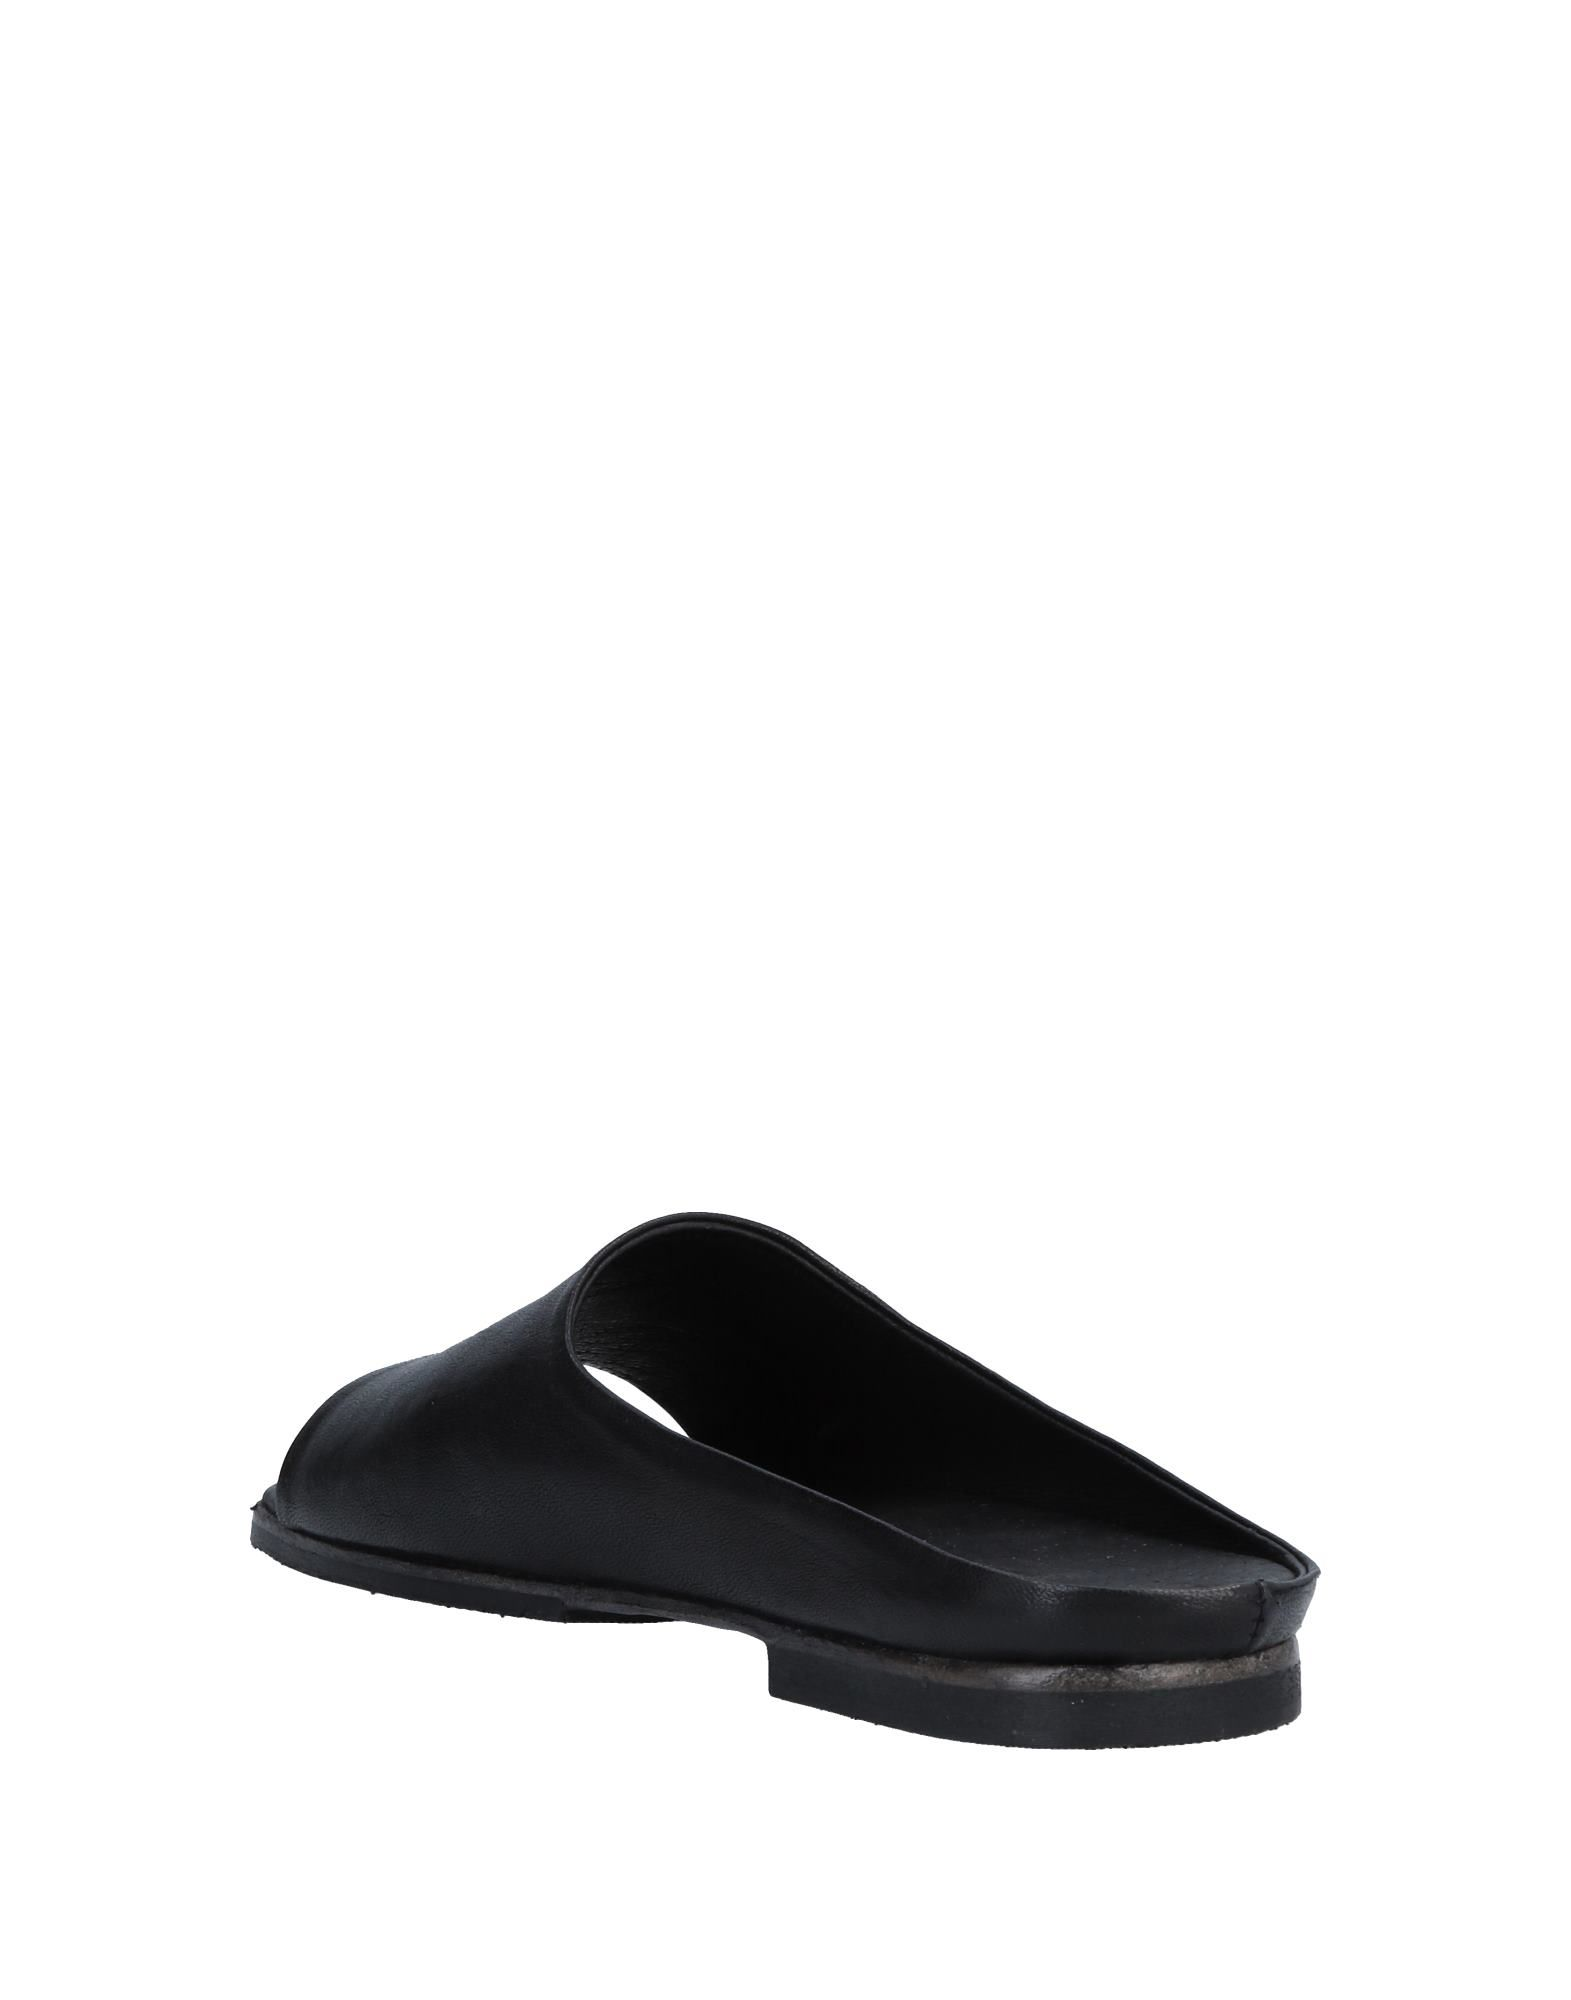 1725.A Sandals - - - Women 1725.A Sandals online on  United Kingdom - 11565034DX 0a959a